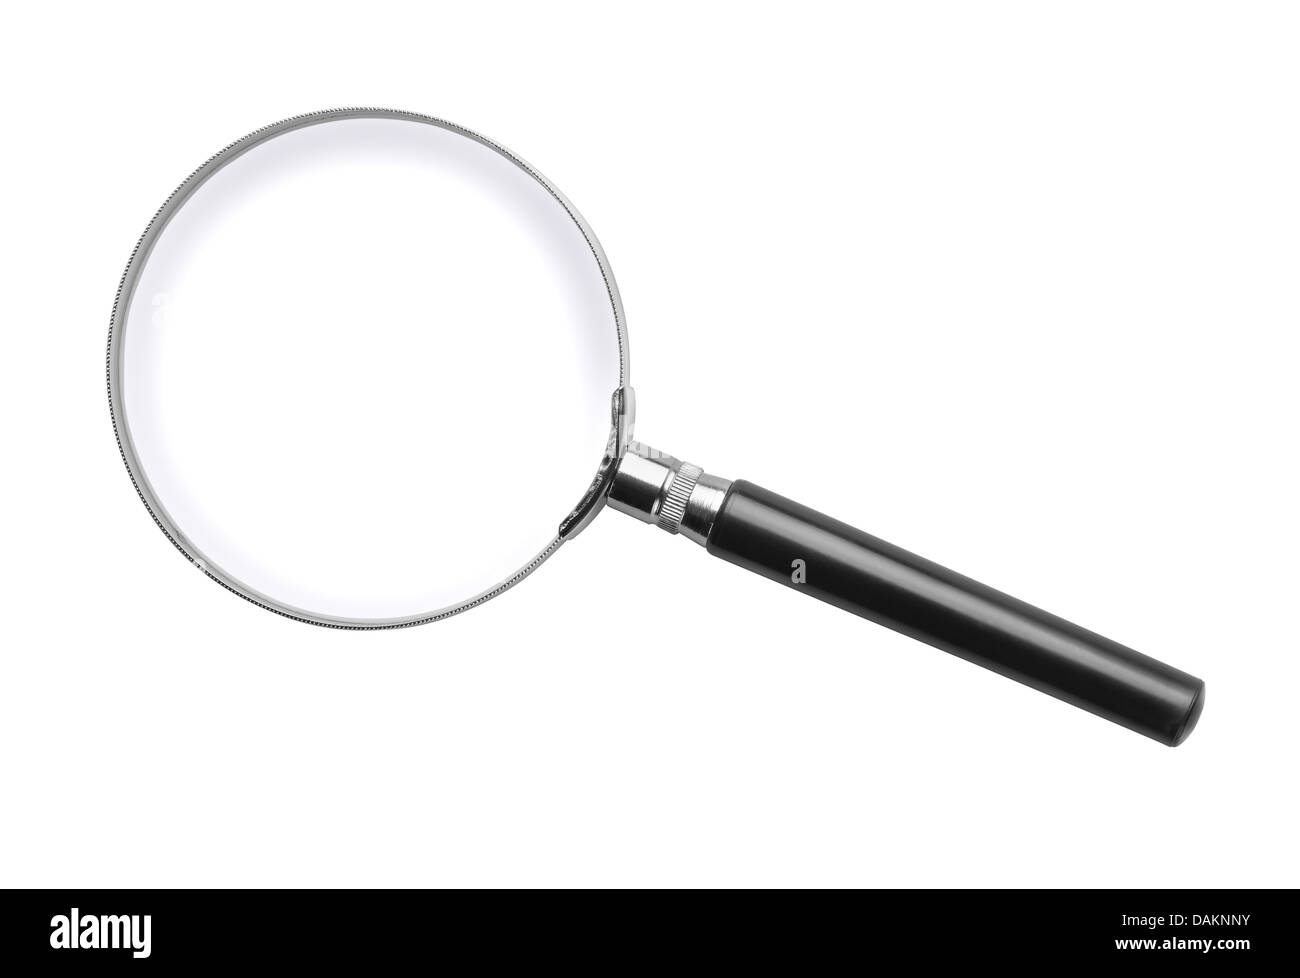 Classic magnifying glass isolated on white - Stock Image